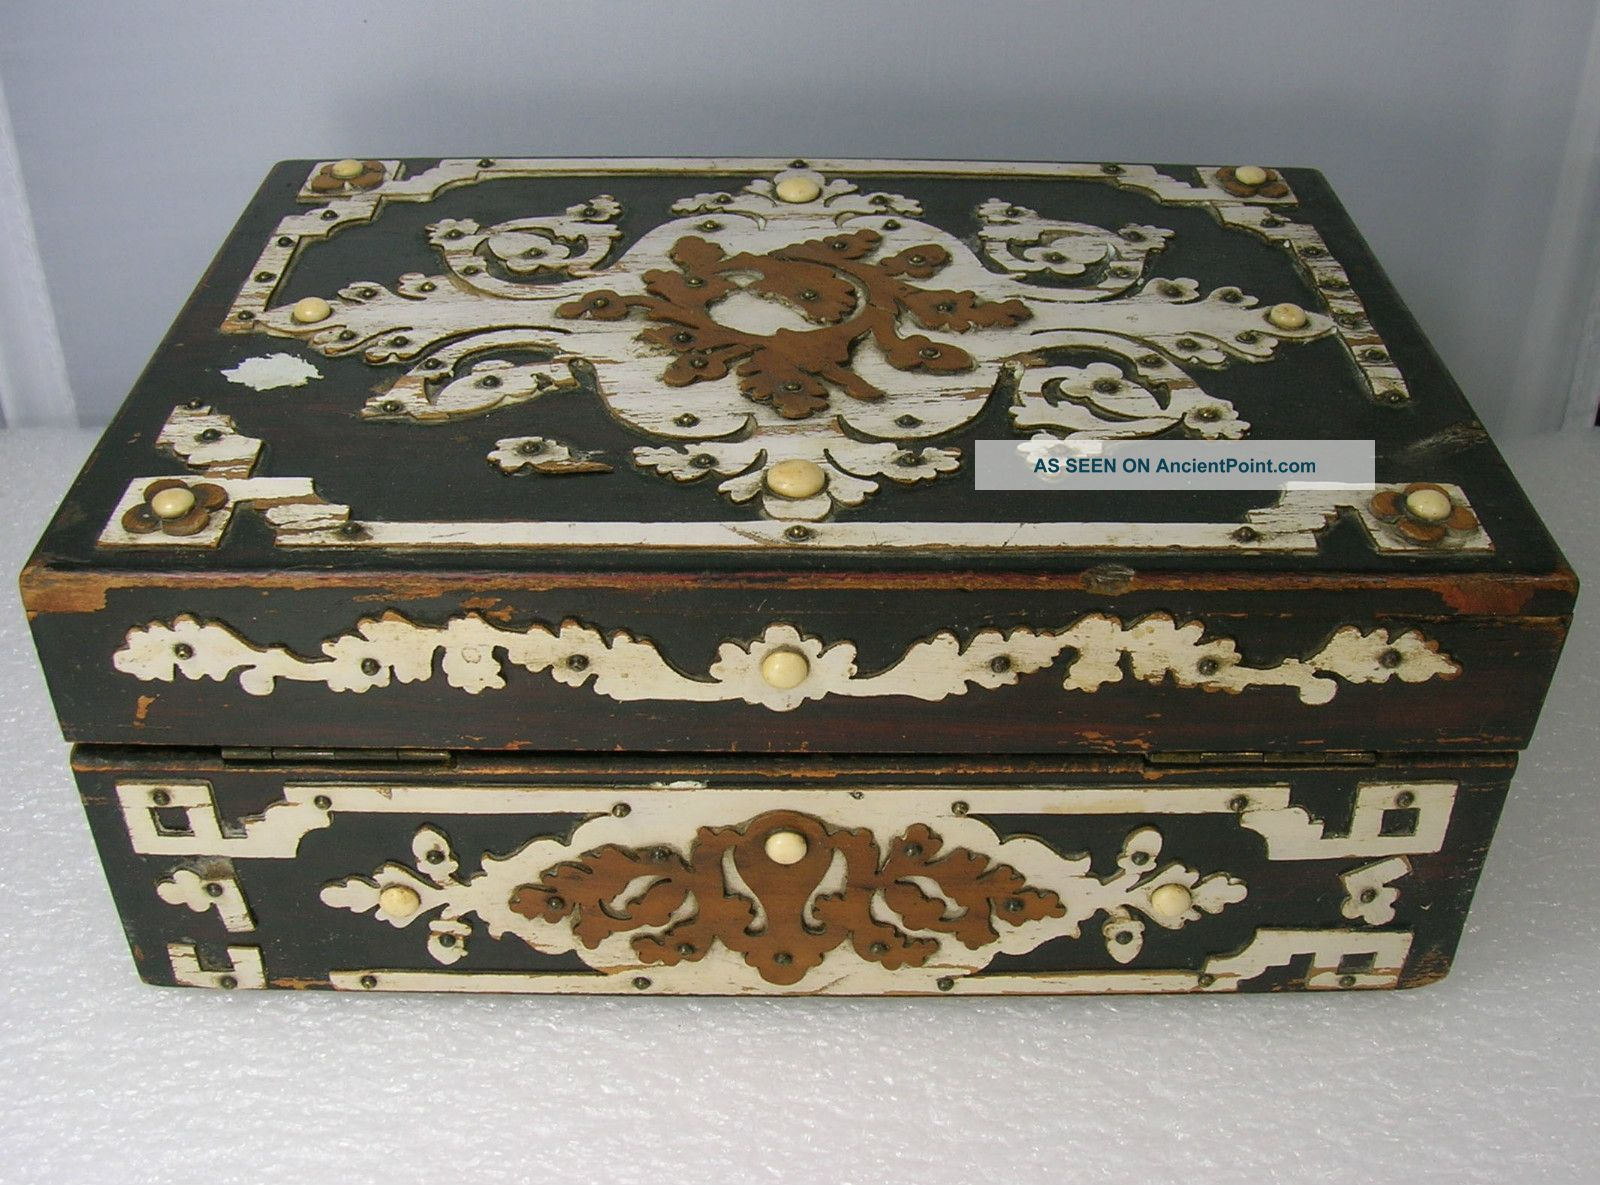 pictures of antique jewelry boxes images